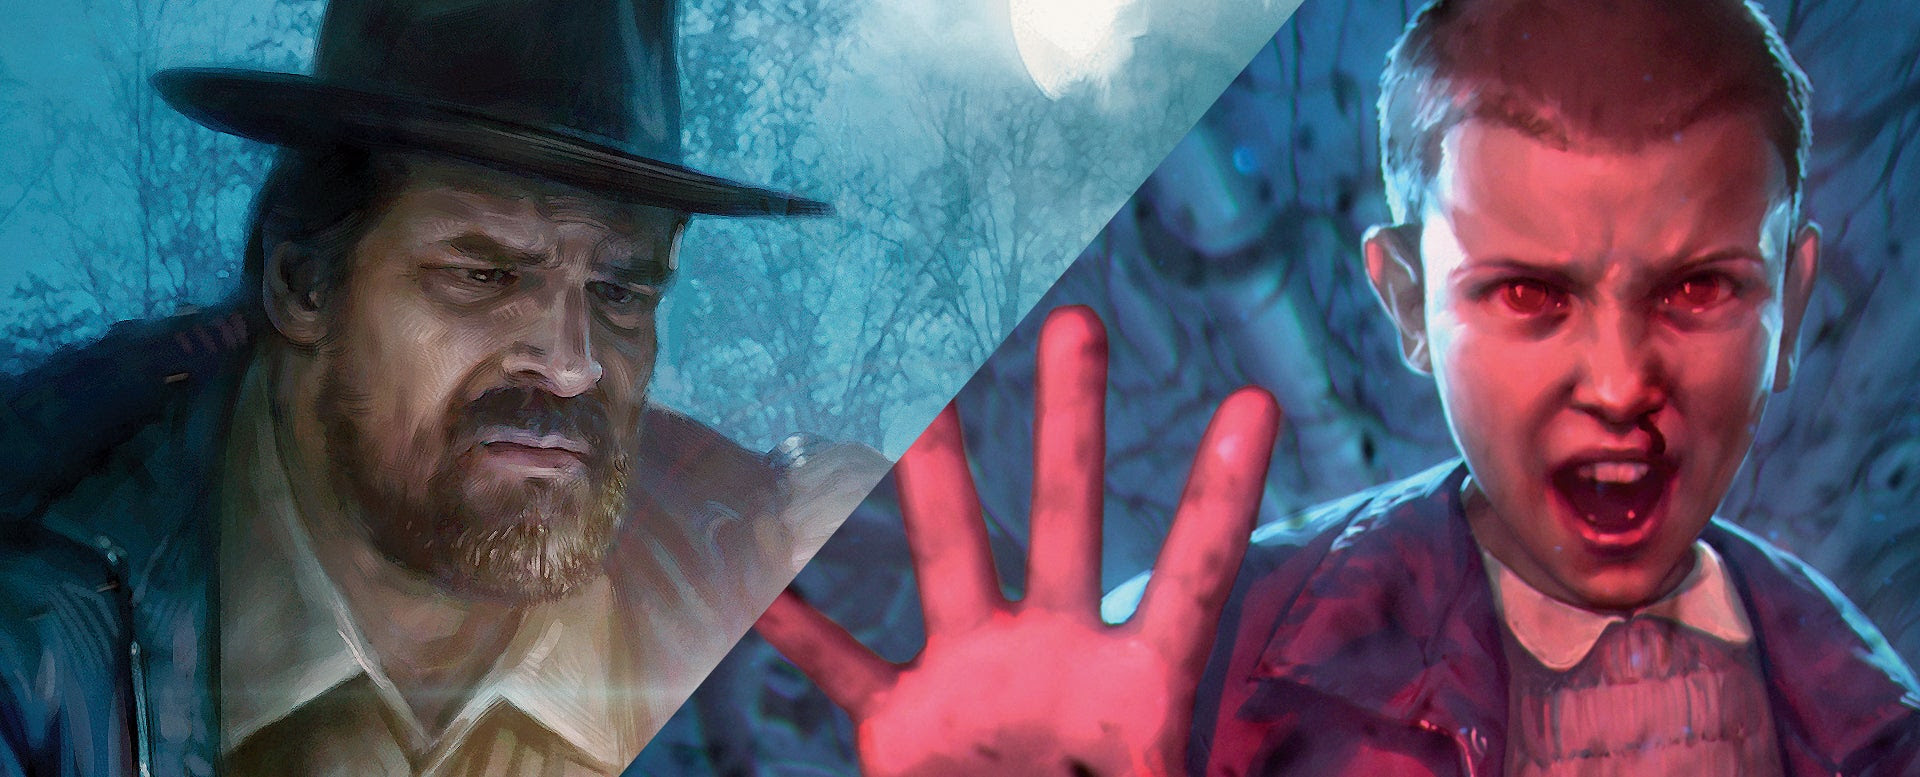 Exclusive: Stranger Things' Hopper and Eleven Magic: The Gathering Cards Revealed